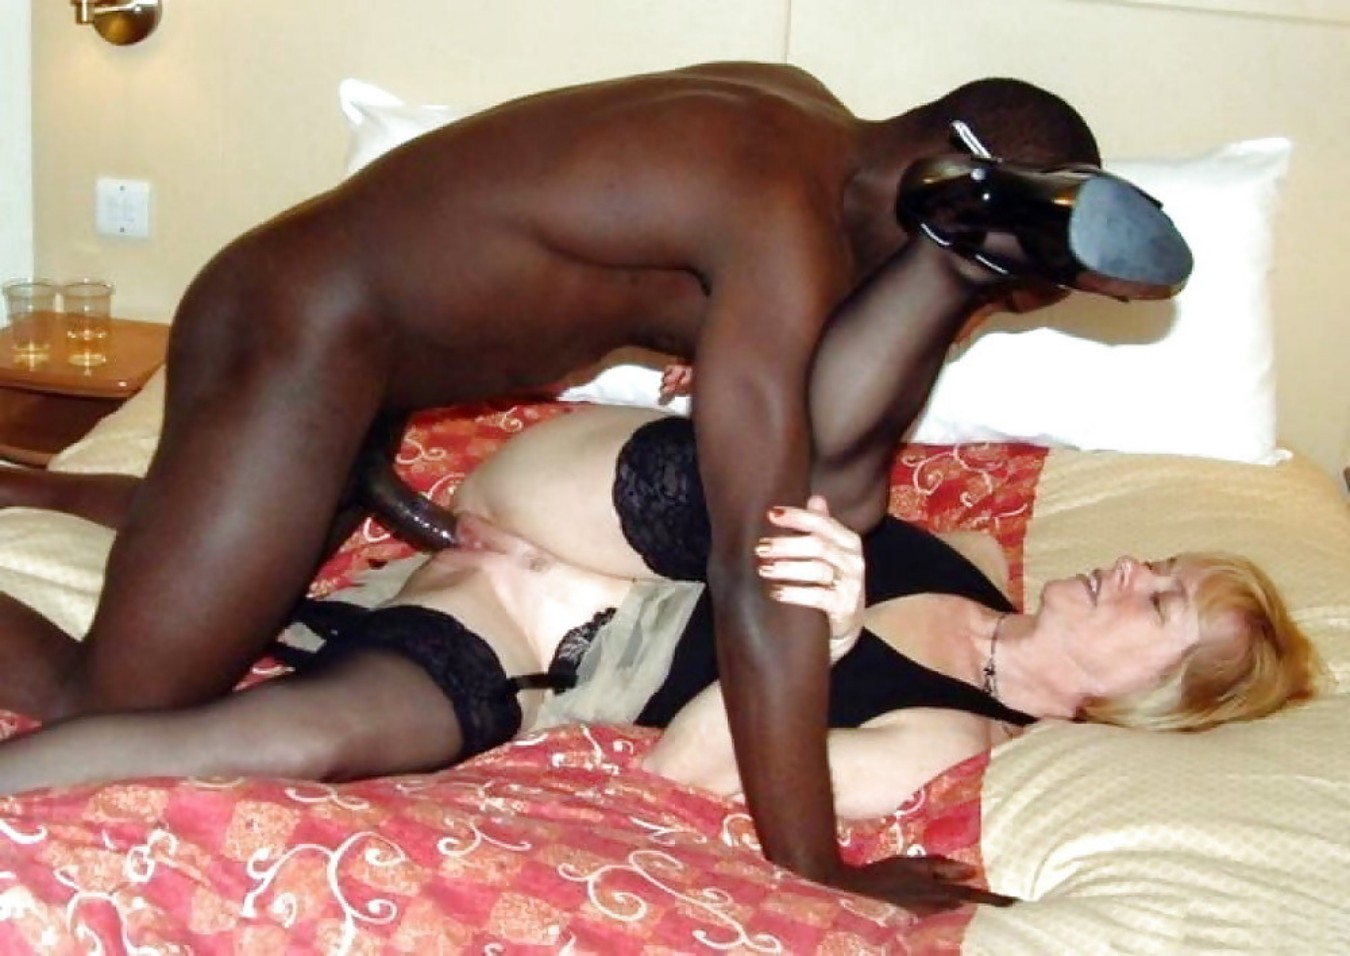 Xrated interracial video #5